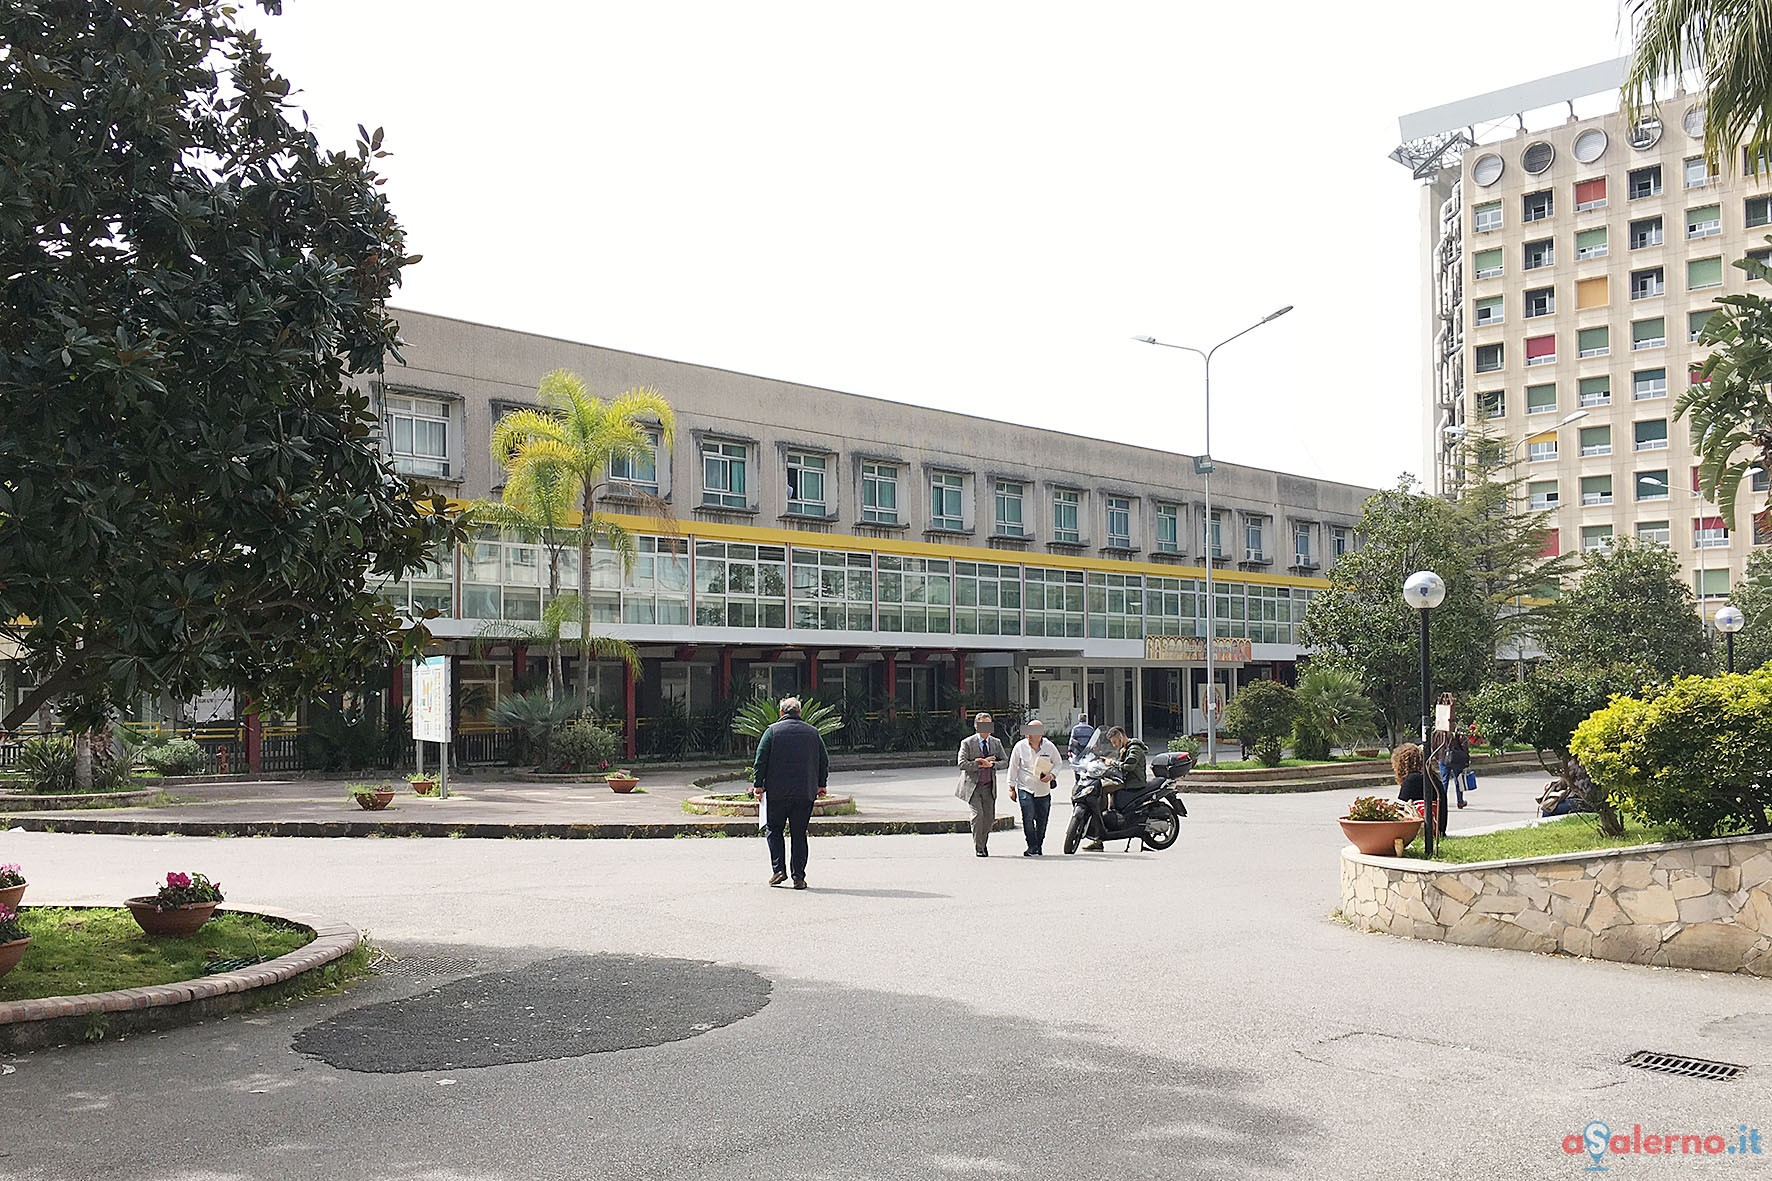 Ospedale21